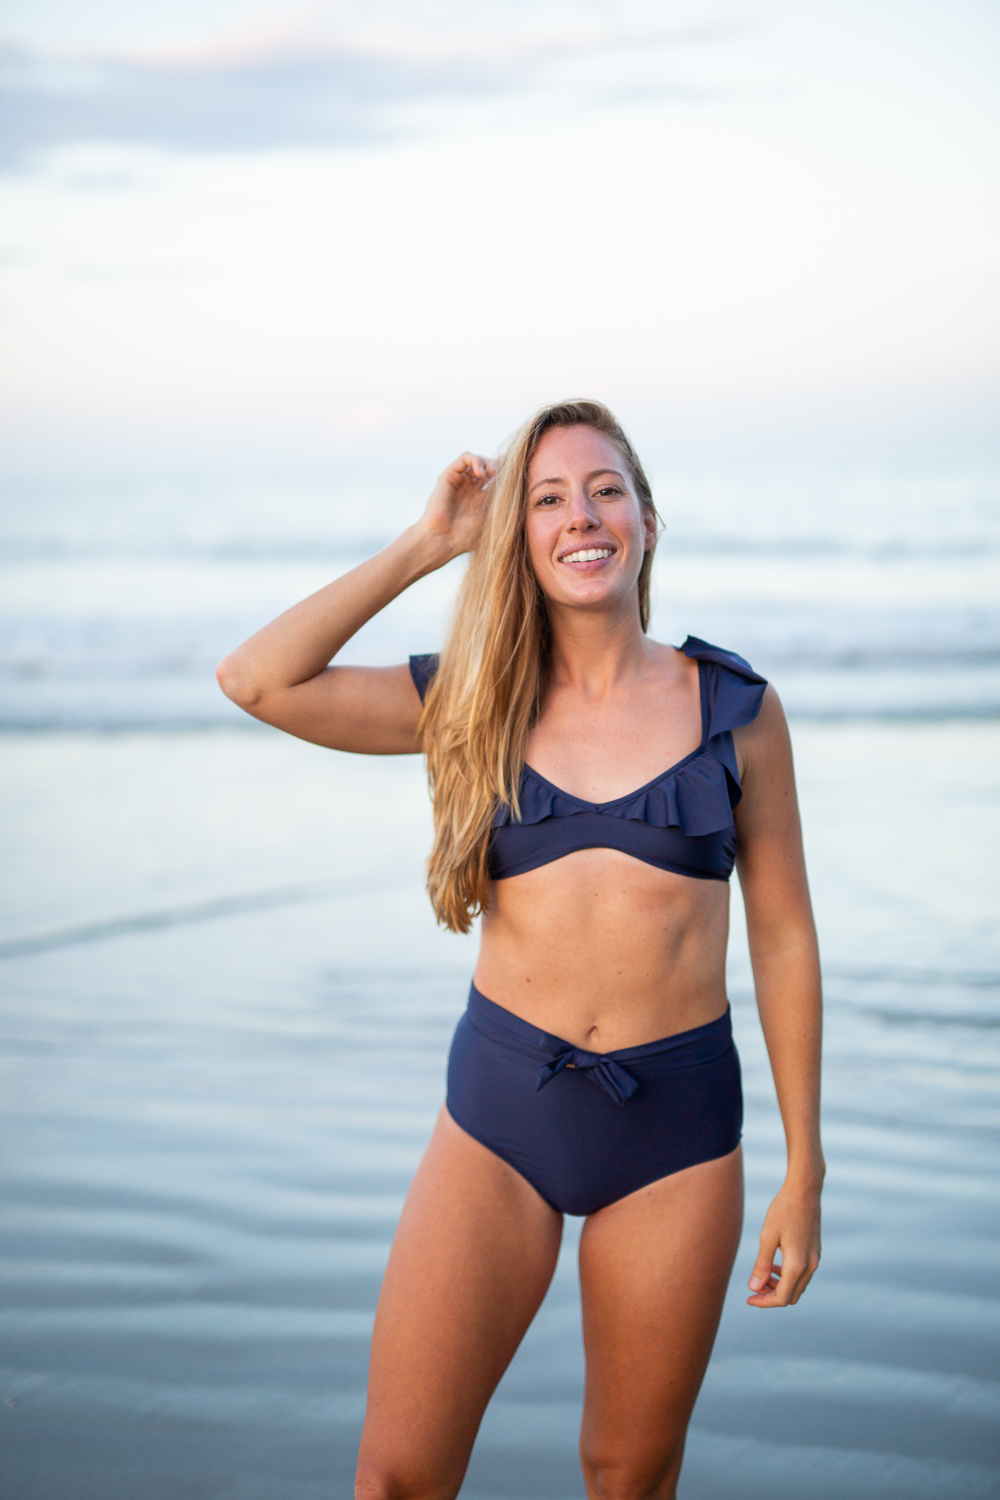 The Most Flattering High Waisted Swimsuit Ever - Naurical Inspired Ruffle Swimsuit, Best End of Summer Swimsuit Sales | Sunshine Style